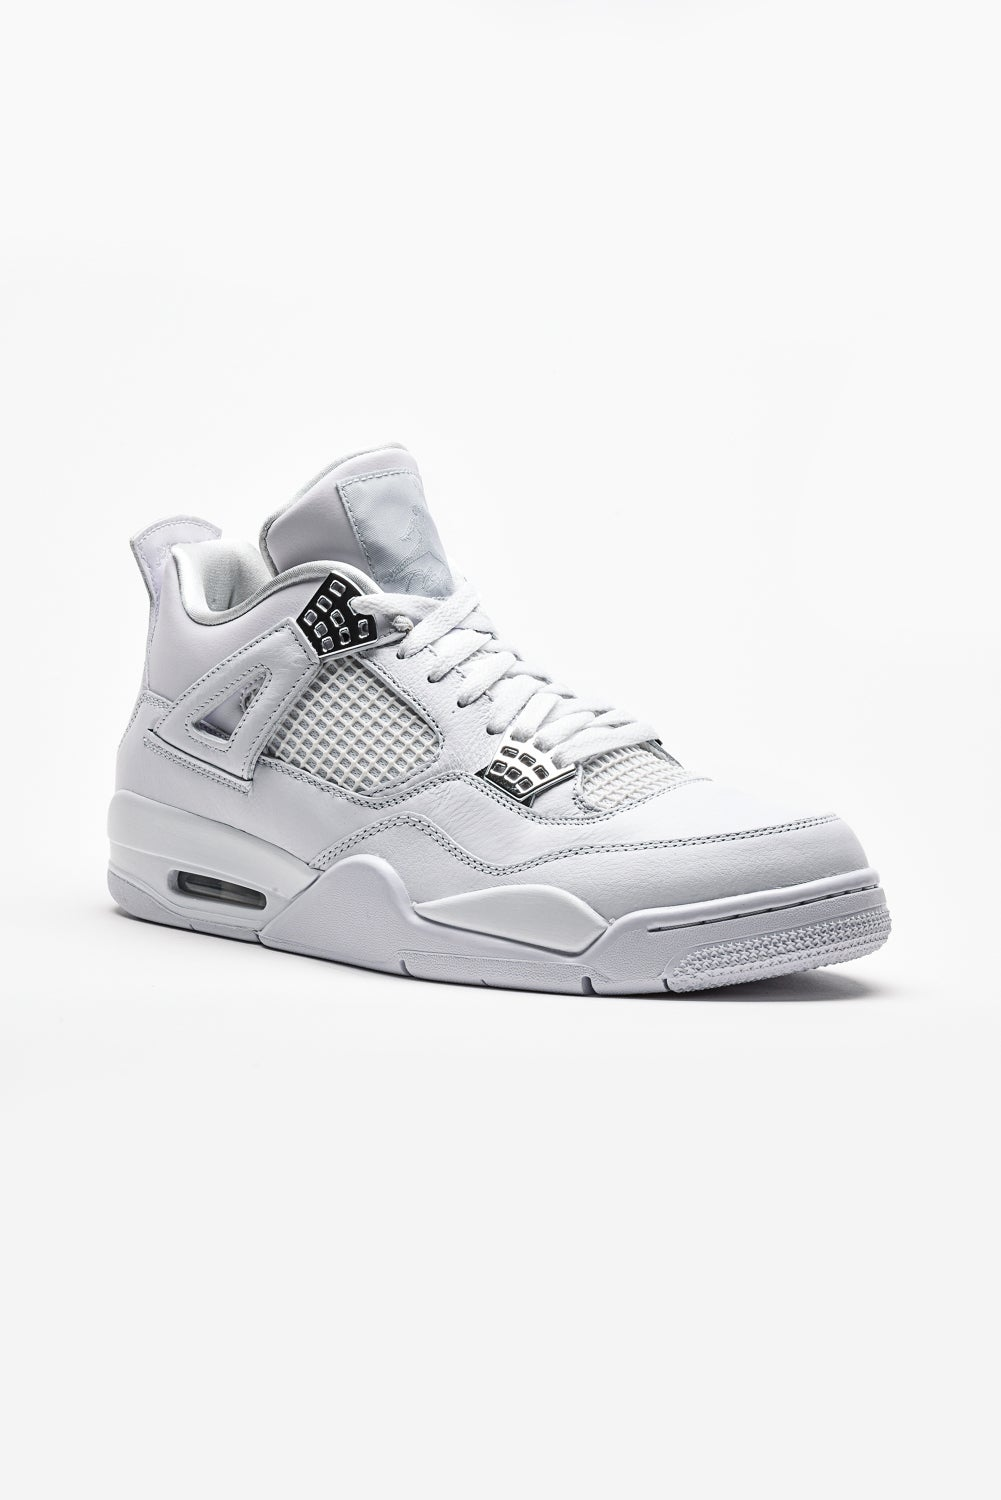 b58222ed51b6 Fresh Kicks Houston — Air Jordan 4 Retro - Pure Money